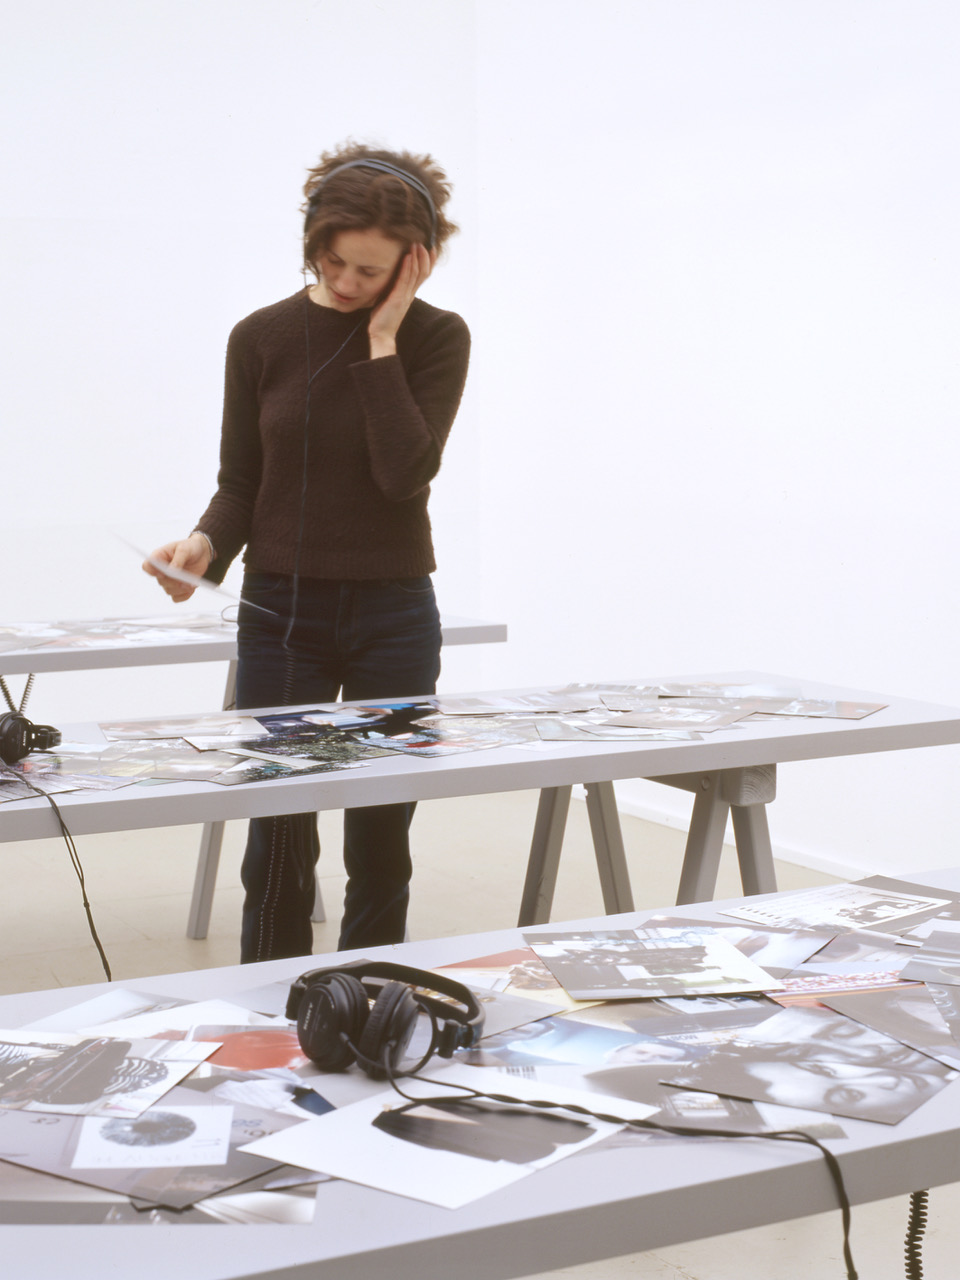 Photograph of the PLOTS installation showing one person standing at a table using the headphones to listen to the installation audio.